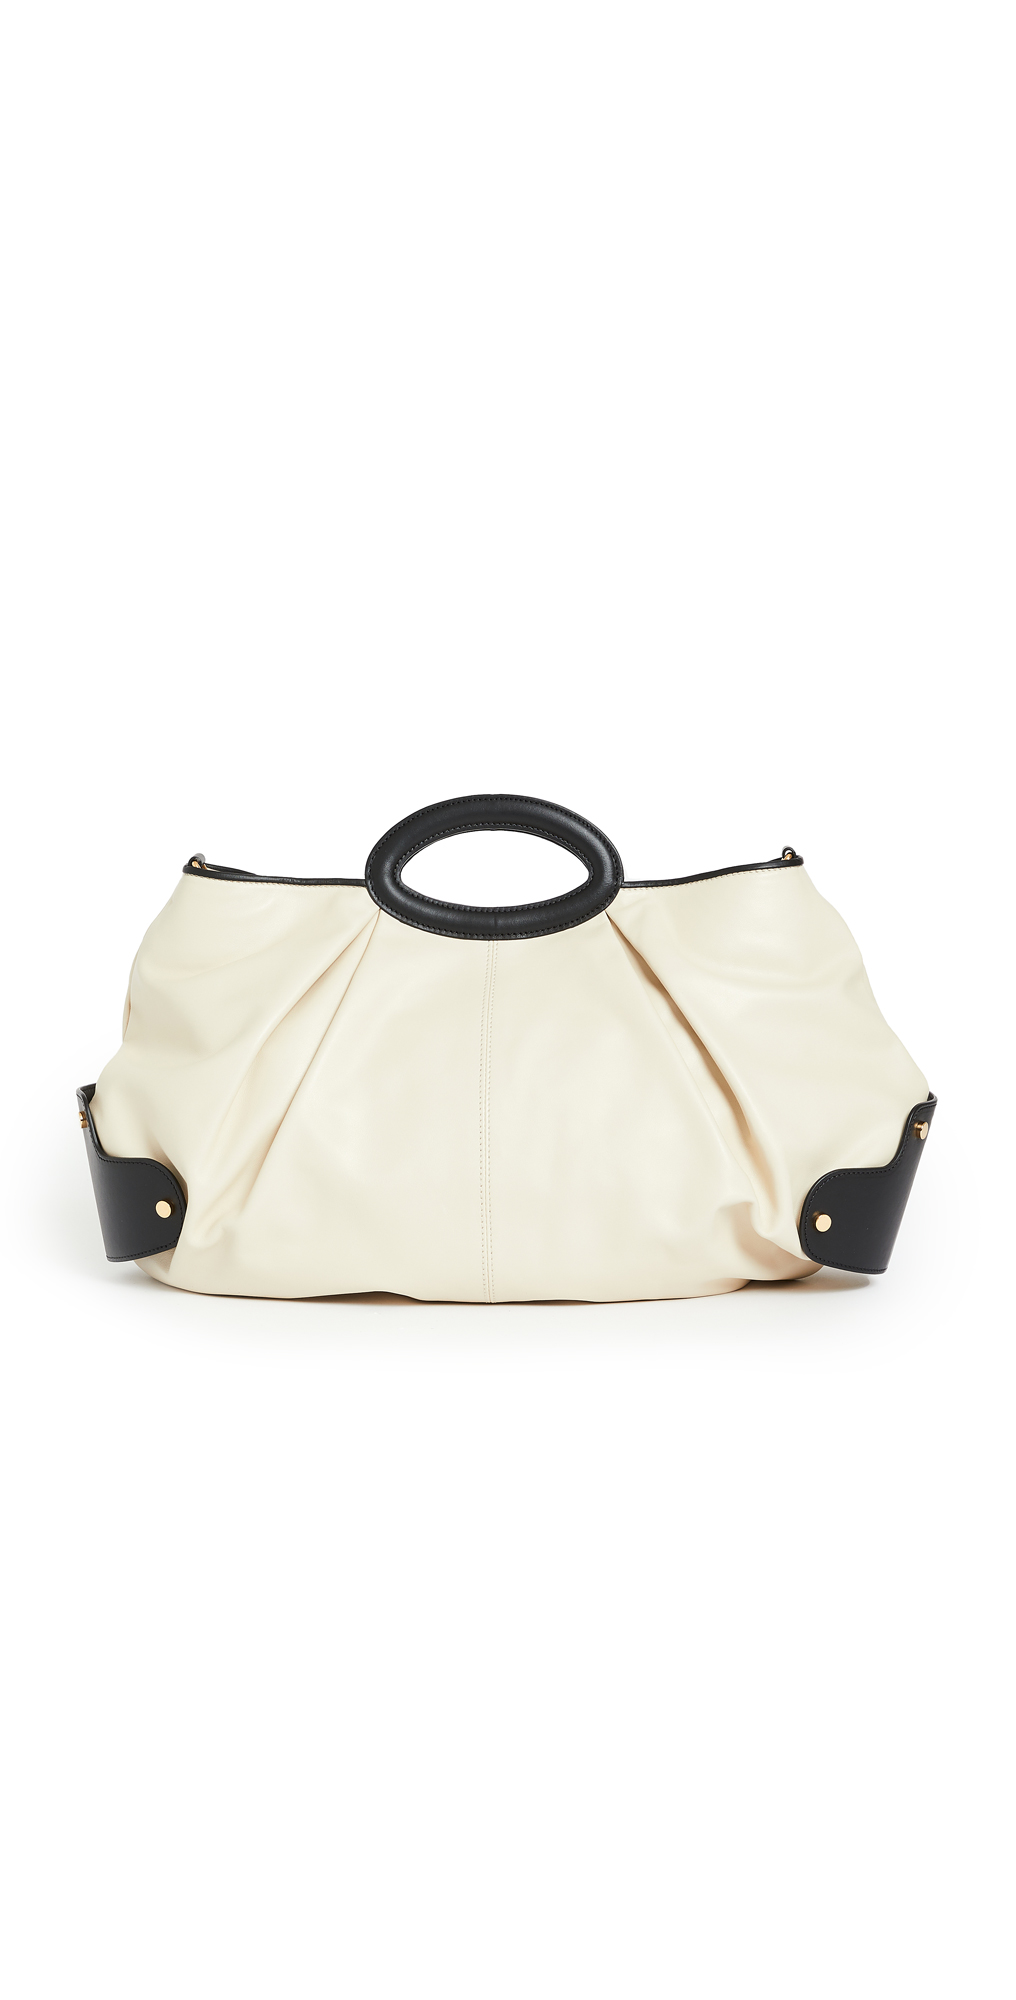 Marni Balloon Tote Bag